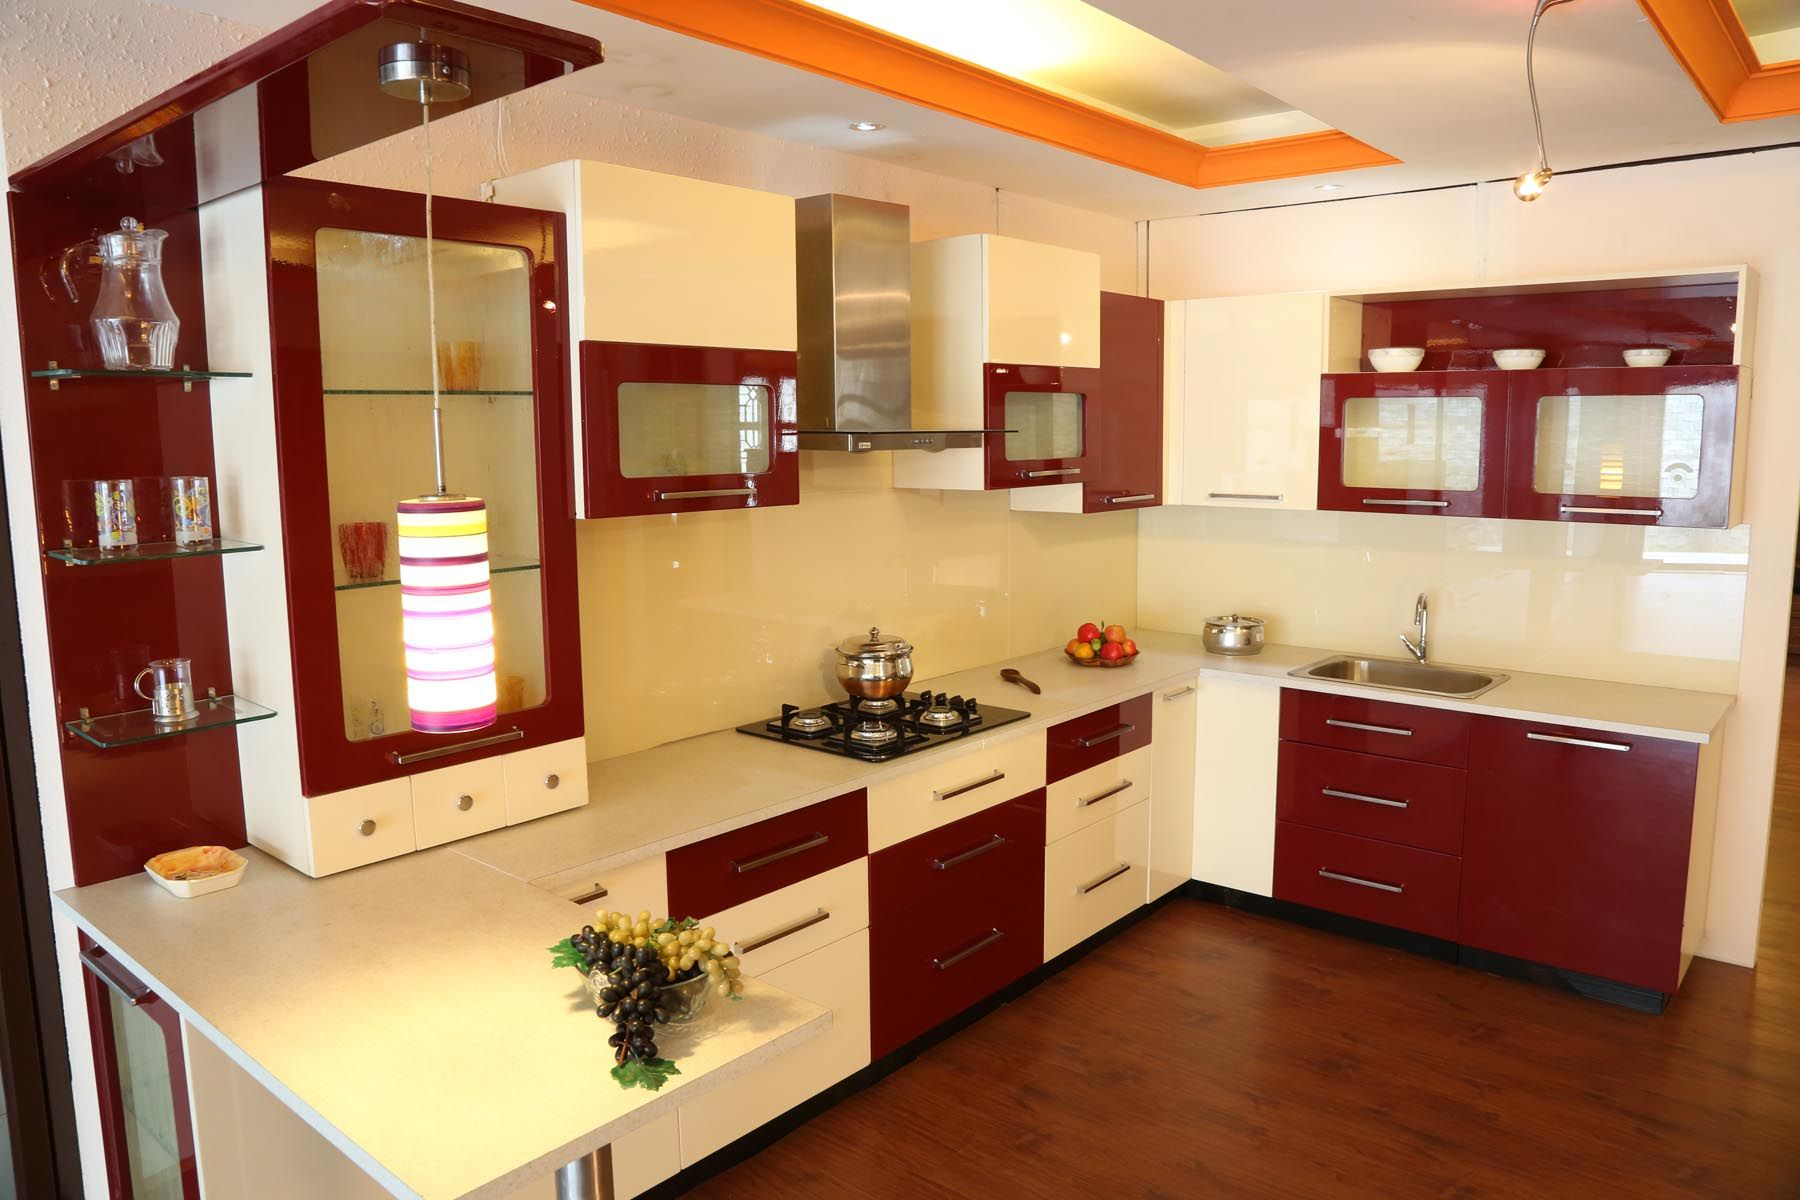 Impressive Kitchen Space With Red And White Interior And Wooden Simple Cupboard Designs For Kitchen In India Design Ideas